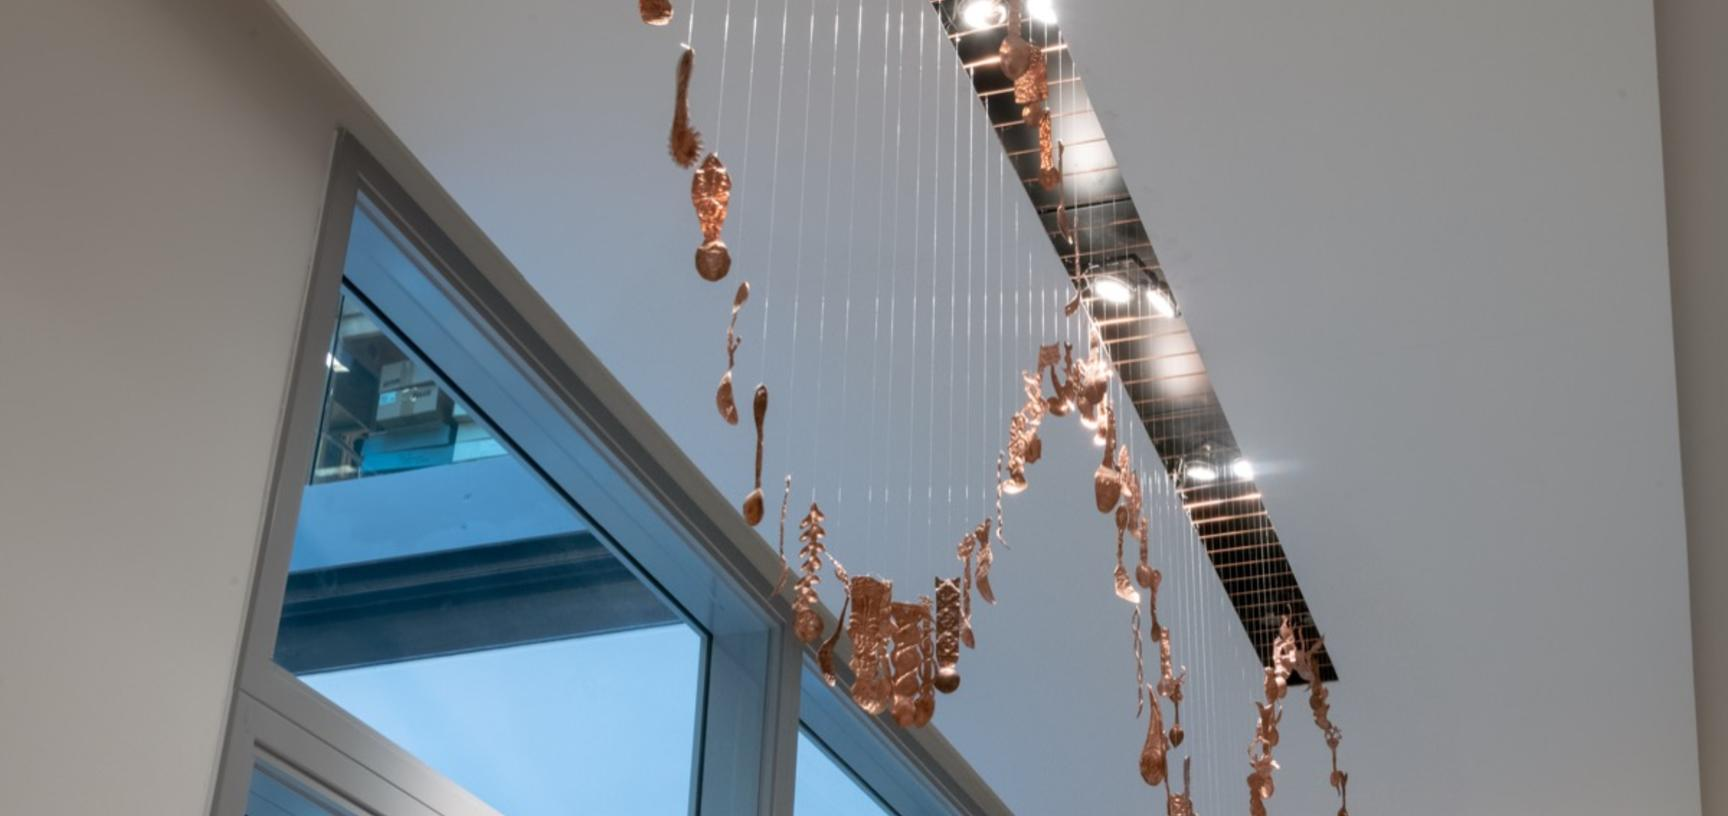 Teaspoons and Trinkets decoration hanging from the ceiling.